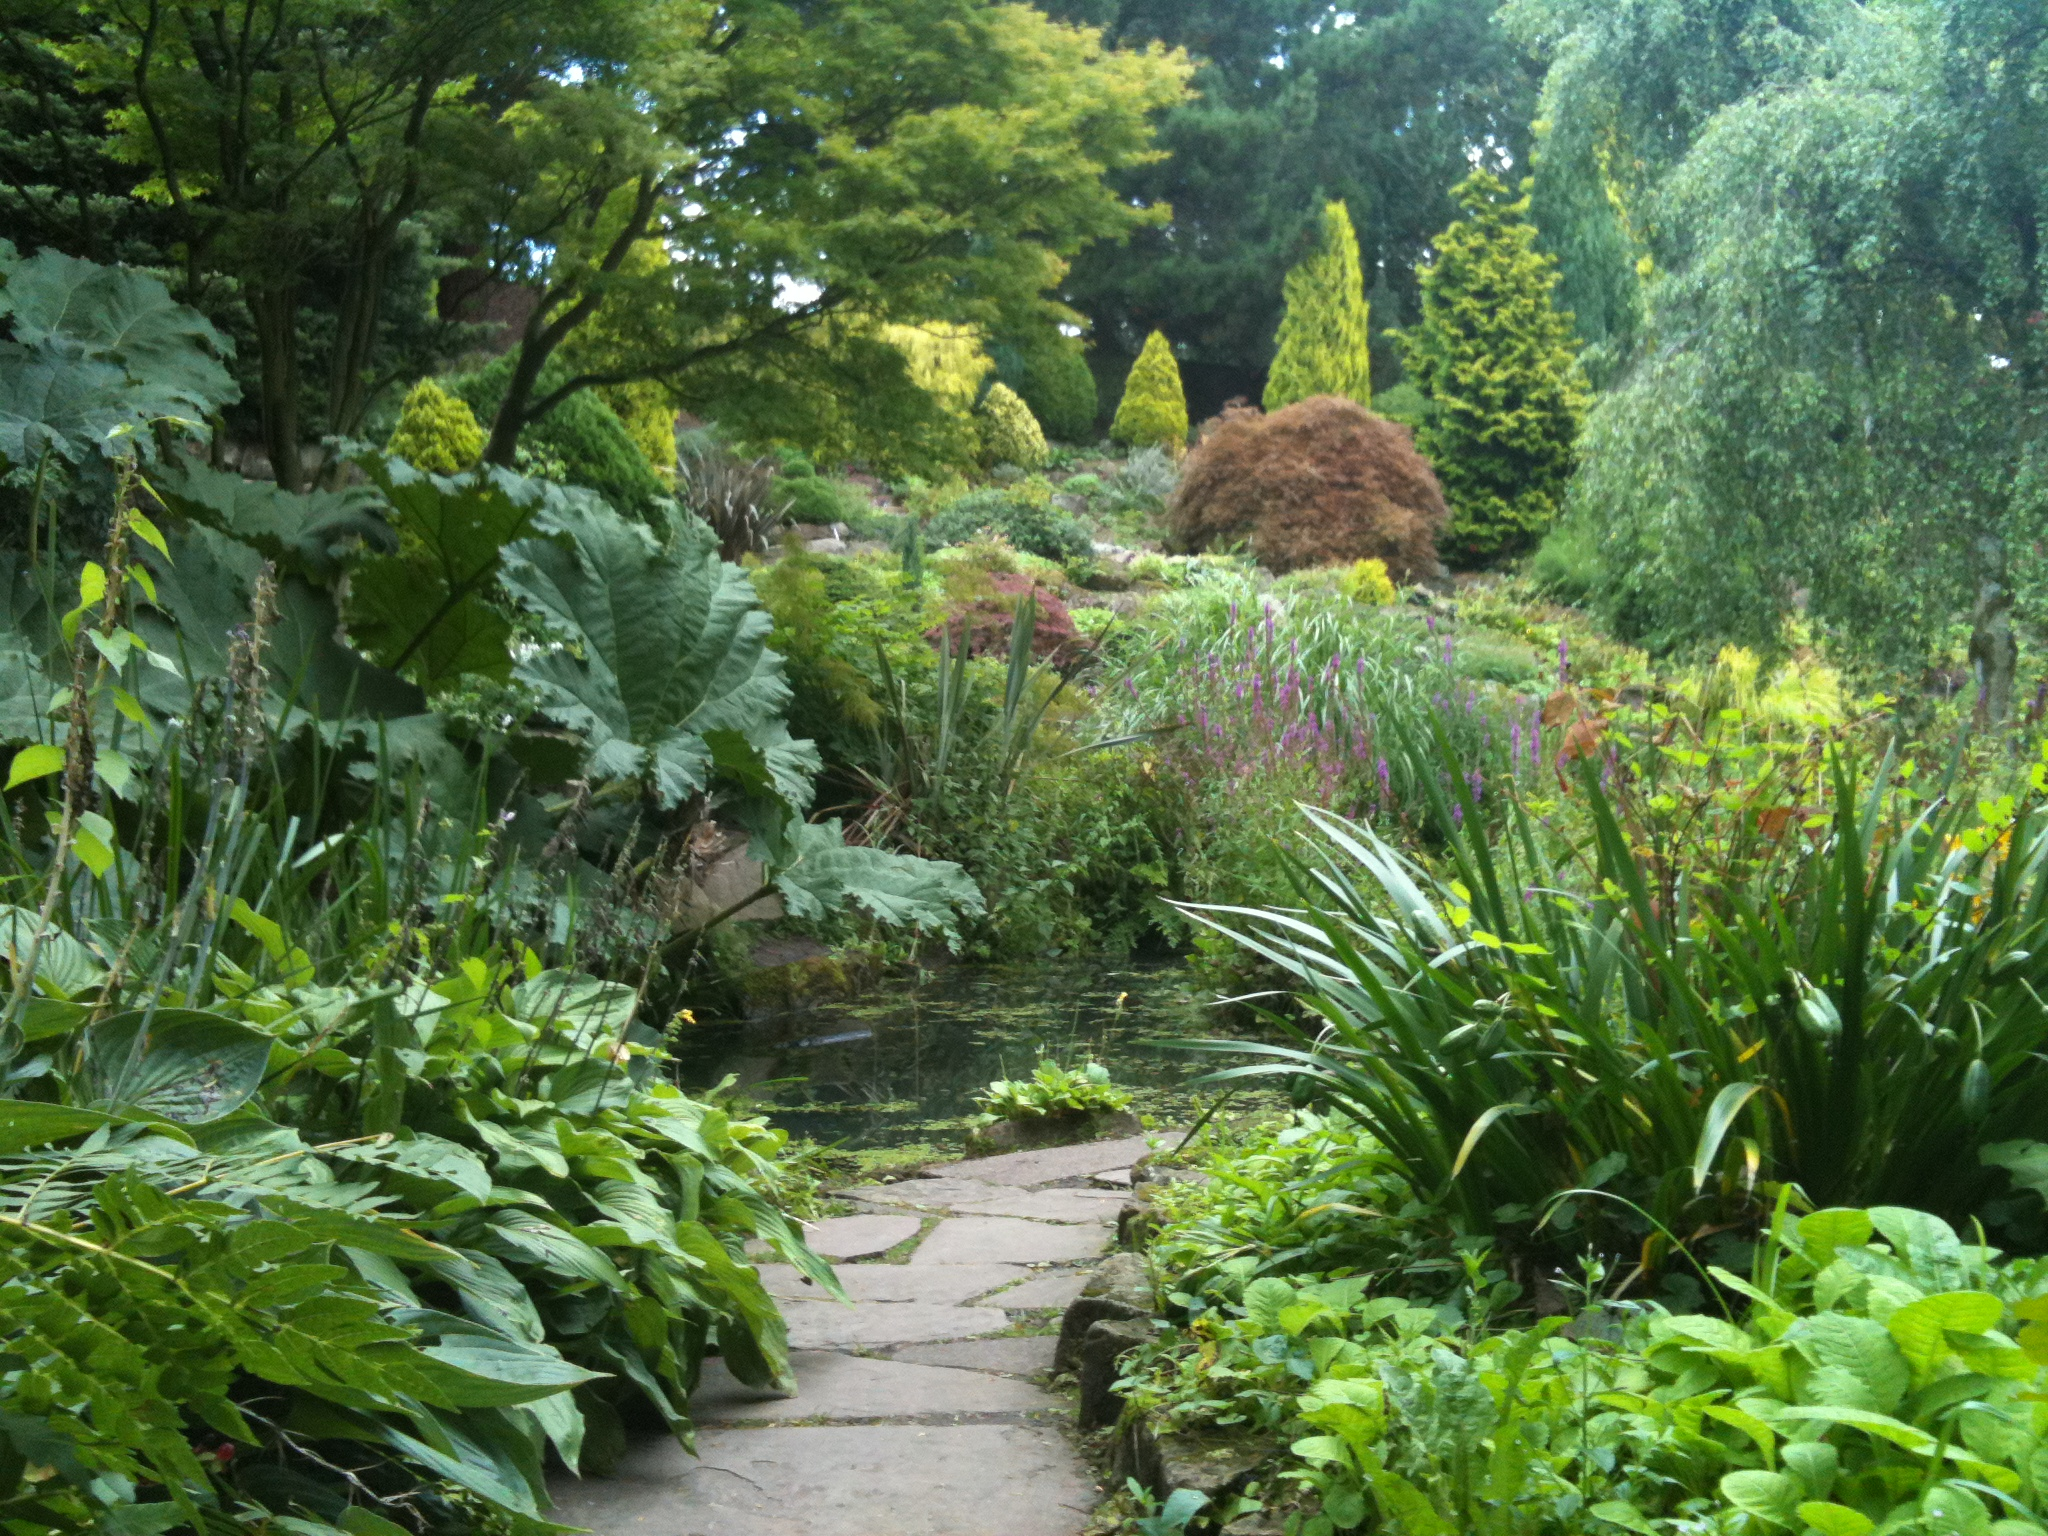 Path through the rock garden surrounded by herbaceous perennials